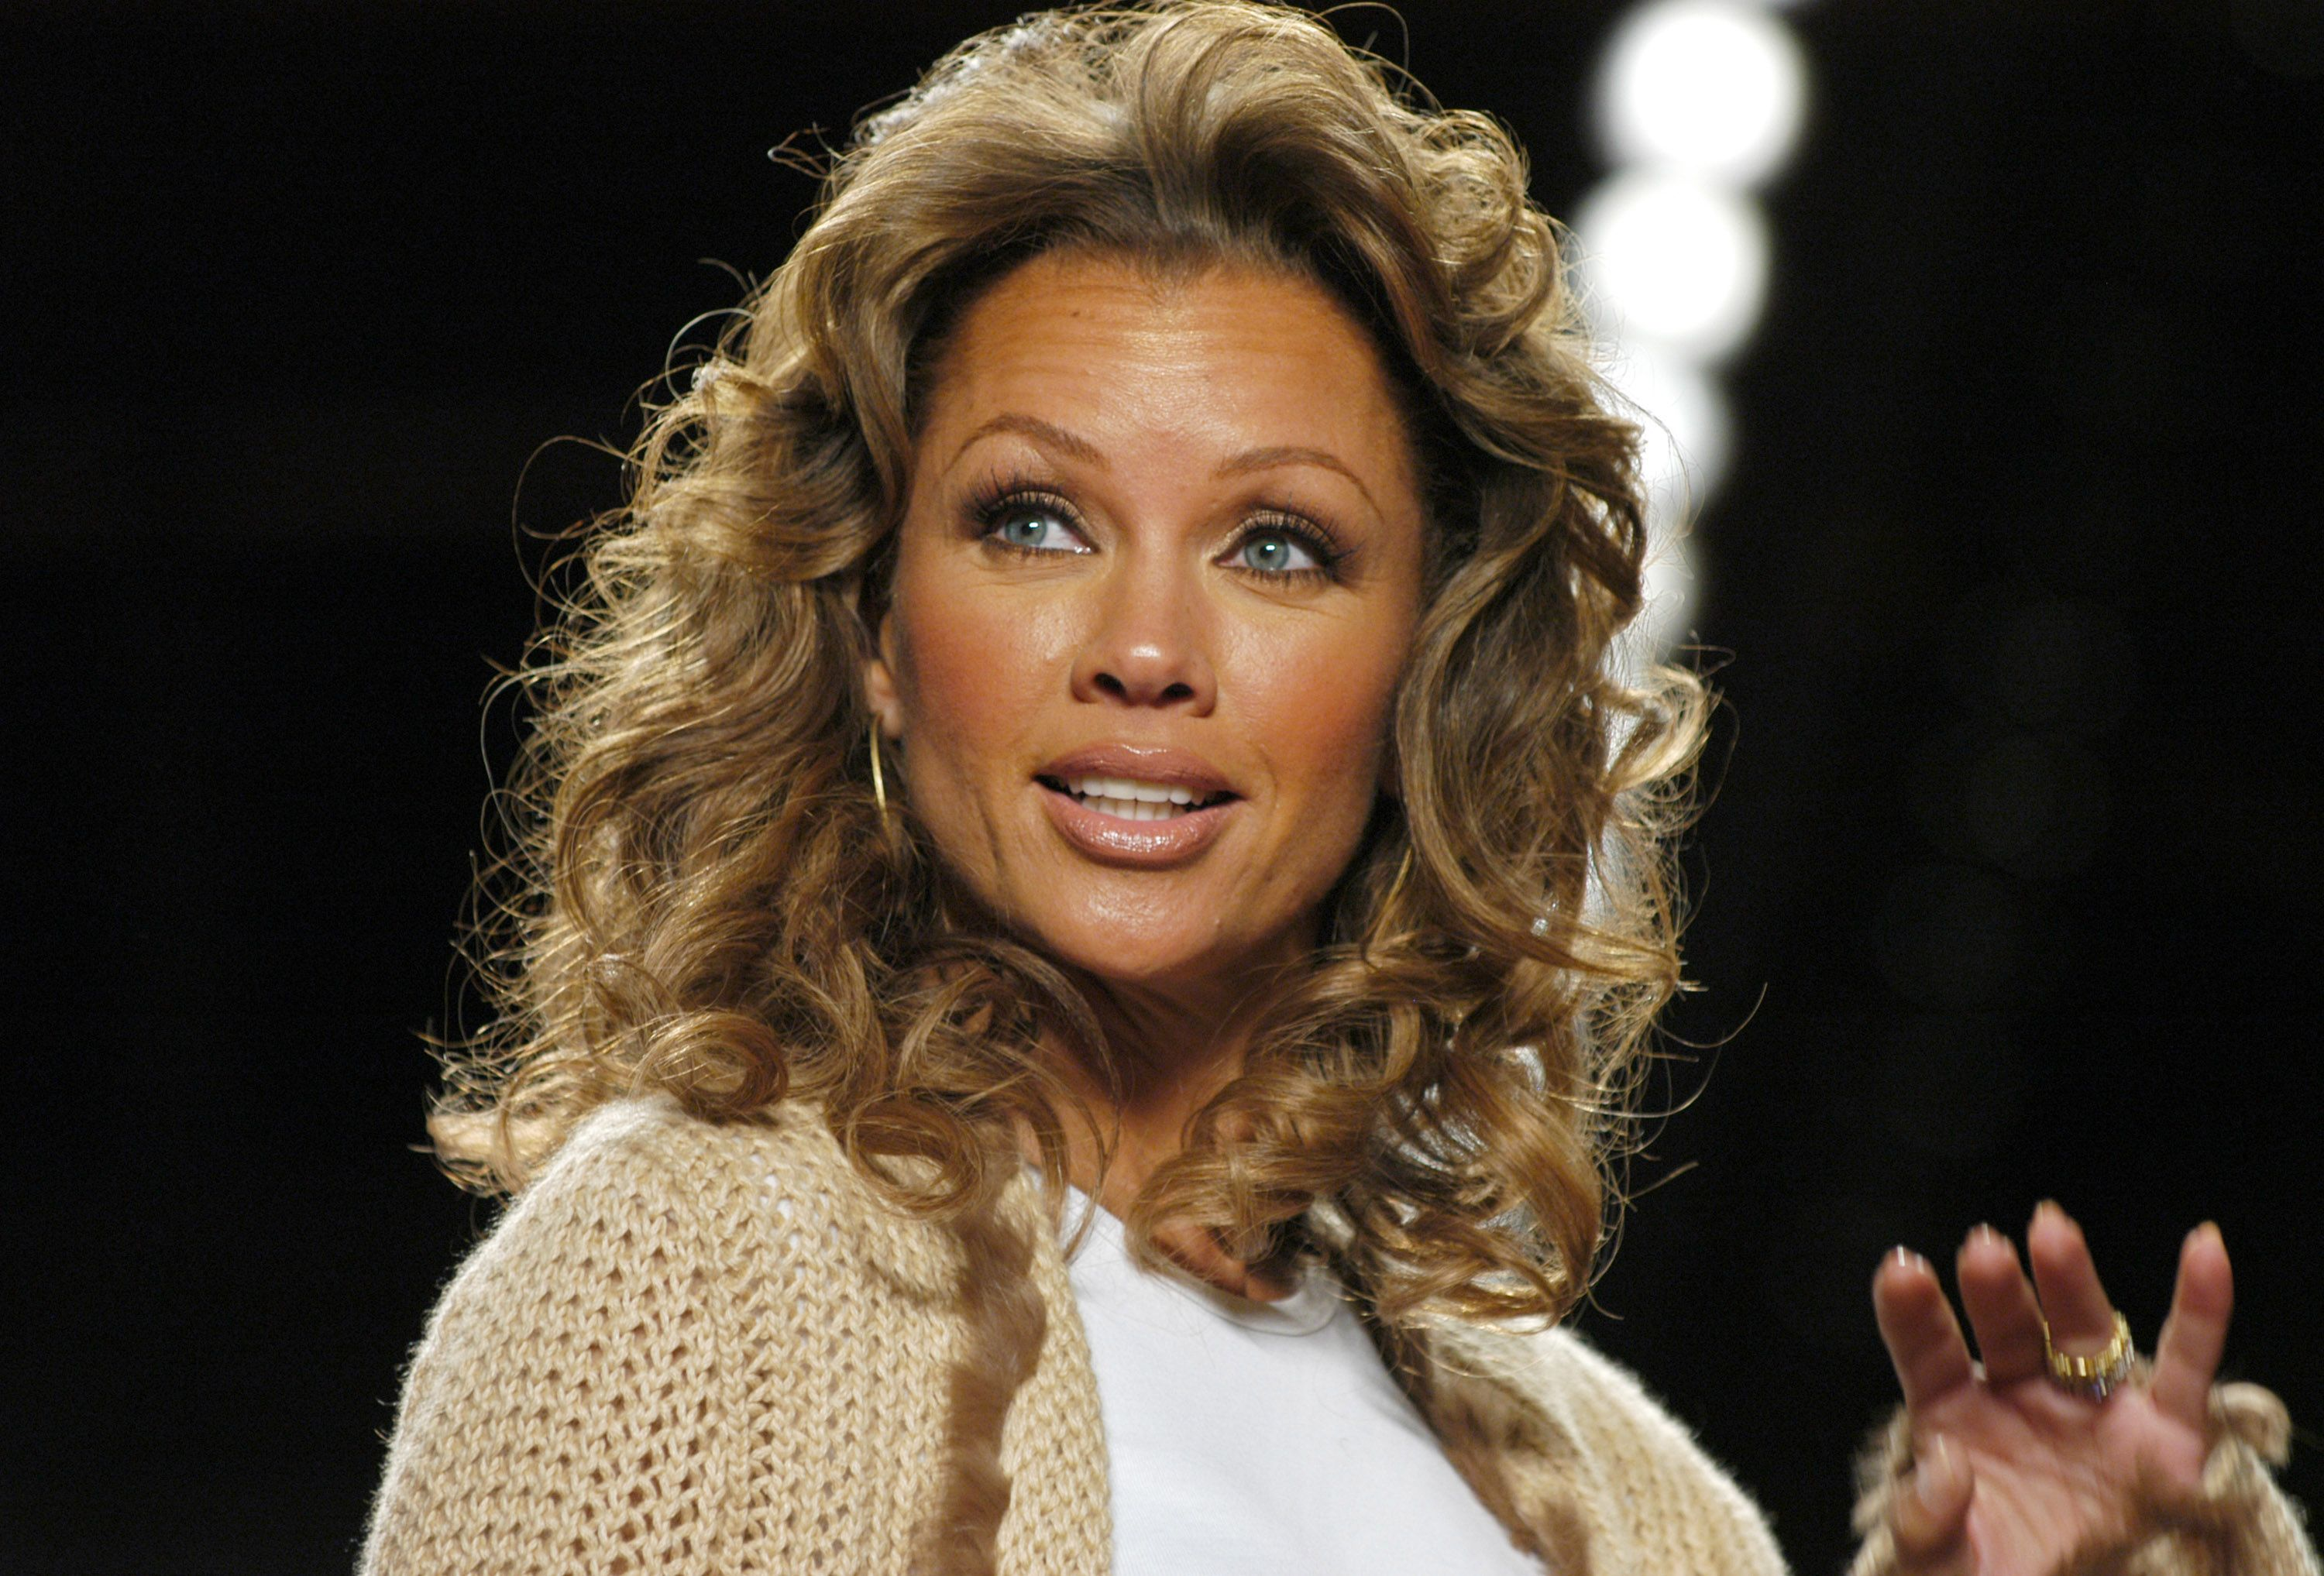 Vanessa Williams during Olympus Fashion Week Fall 2005 at The Tent, Bryant Park in New York City, New York, United States. | Source: Getty Images